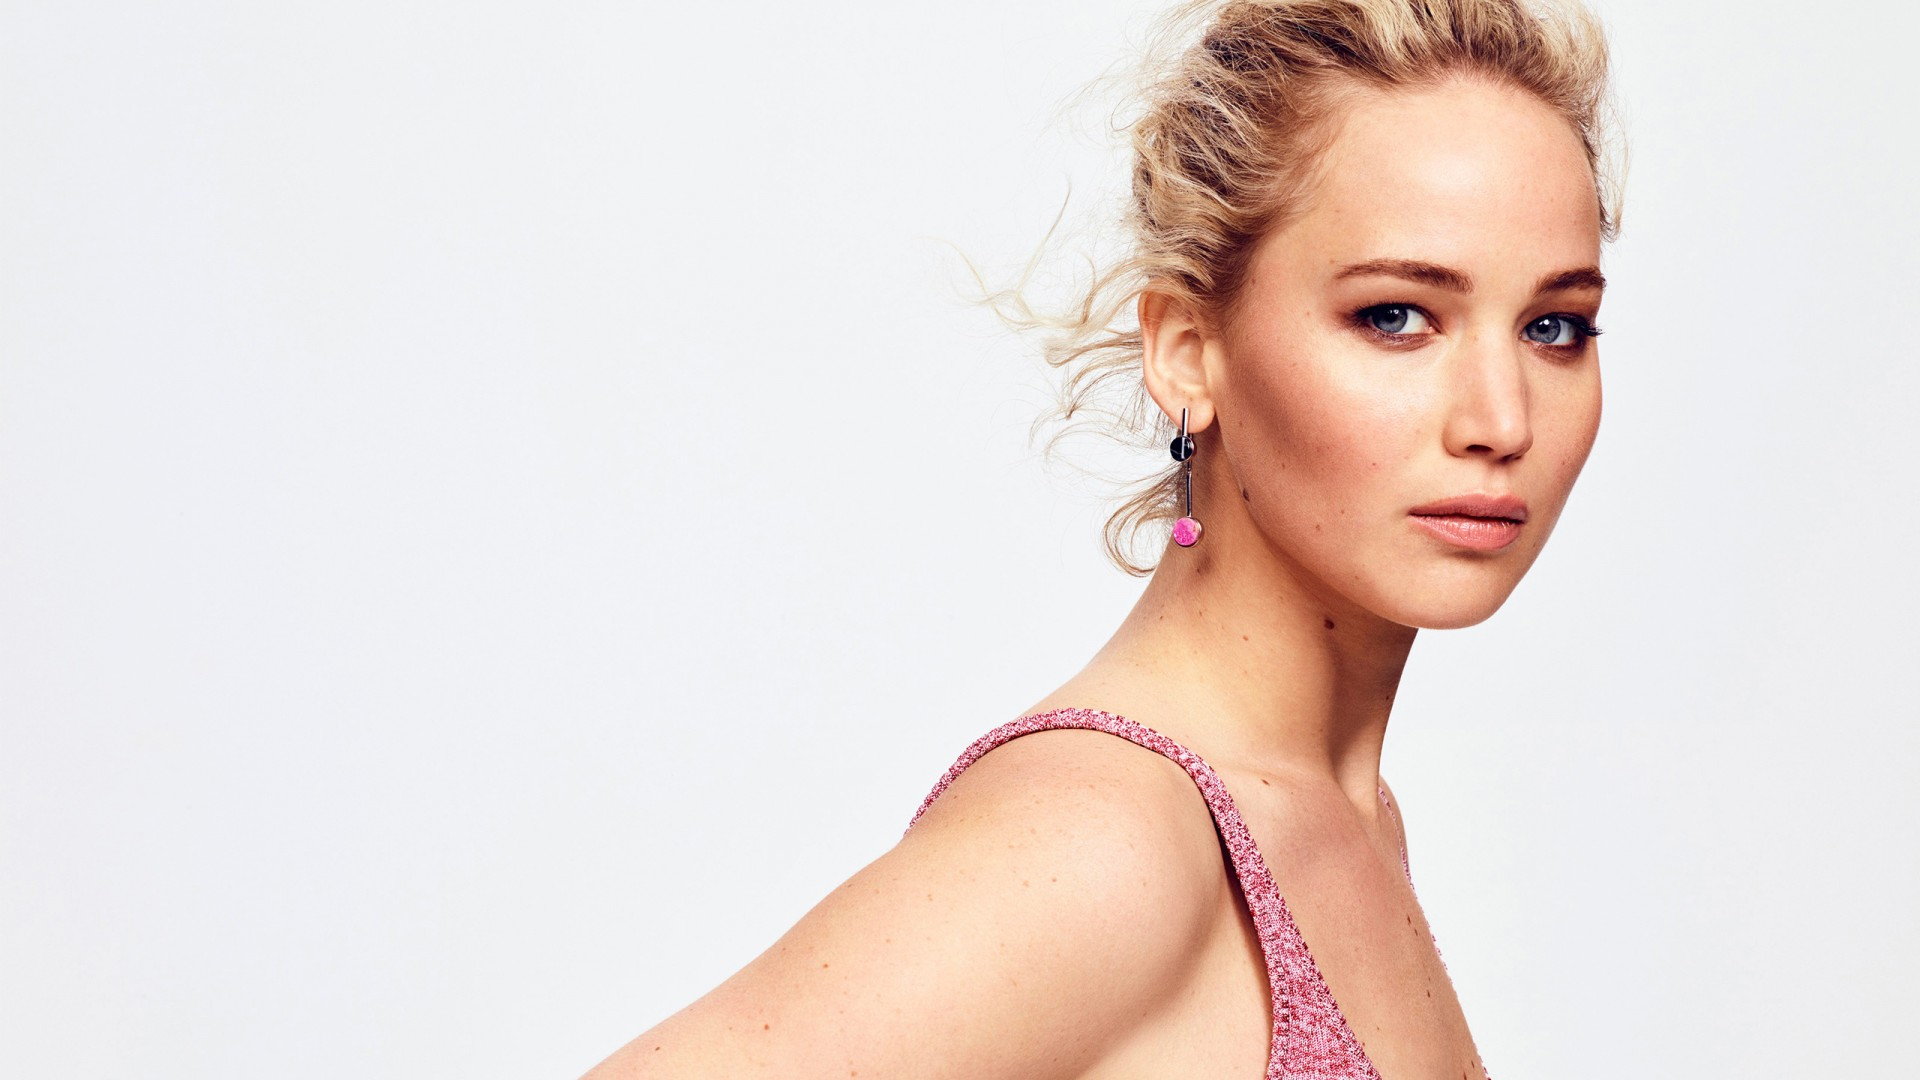 shoot,business,lawrence,technical,celebrities,spud,flash,commercial,trade,hook,charge,commercial message,dior,jennifer lawrence,pip,dart,jennifer,addict